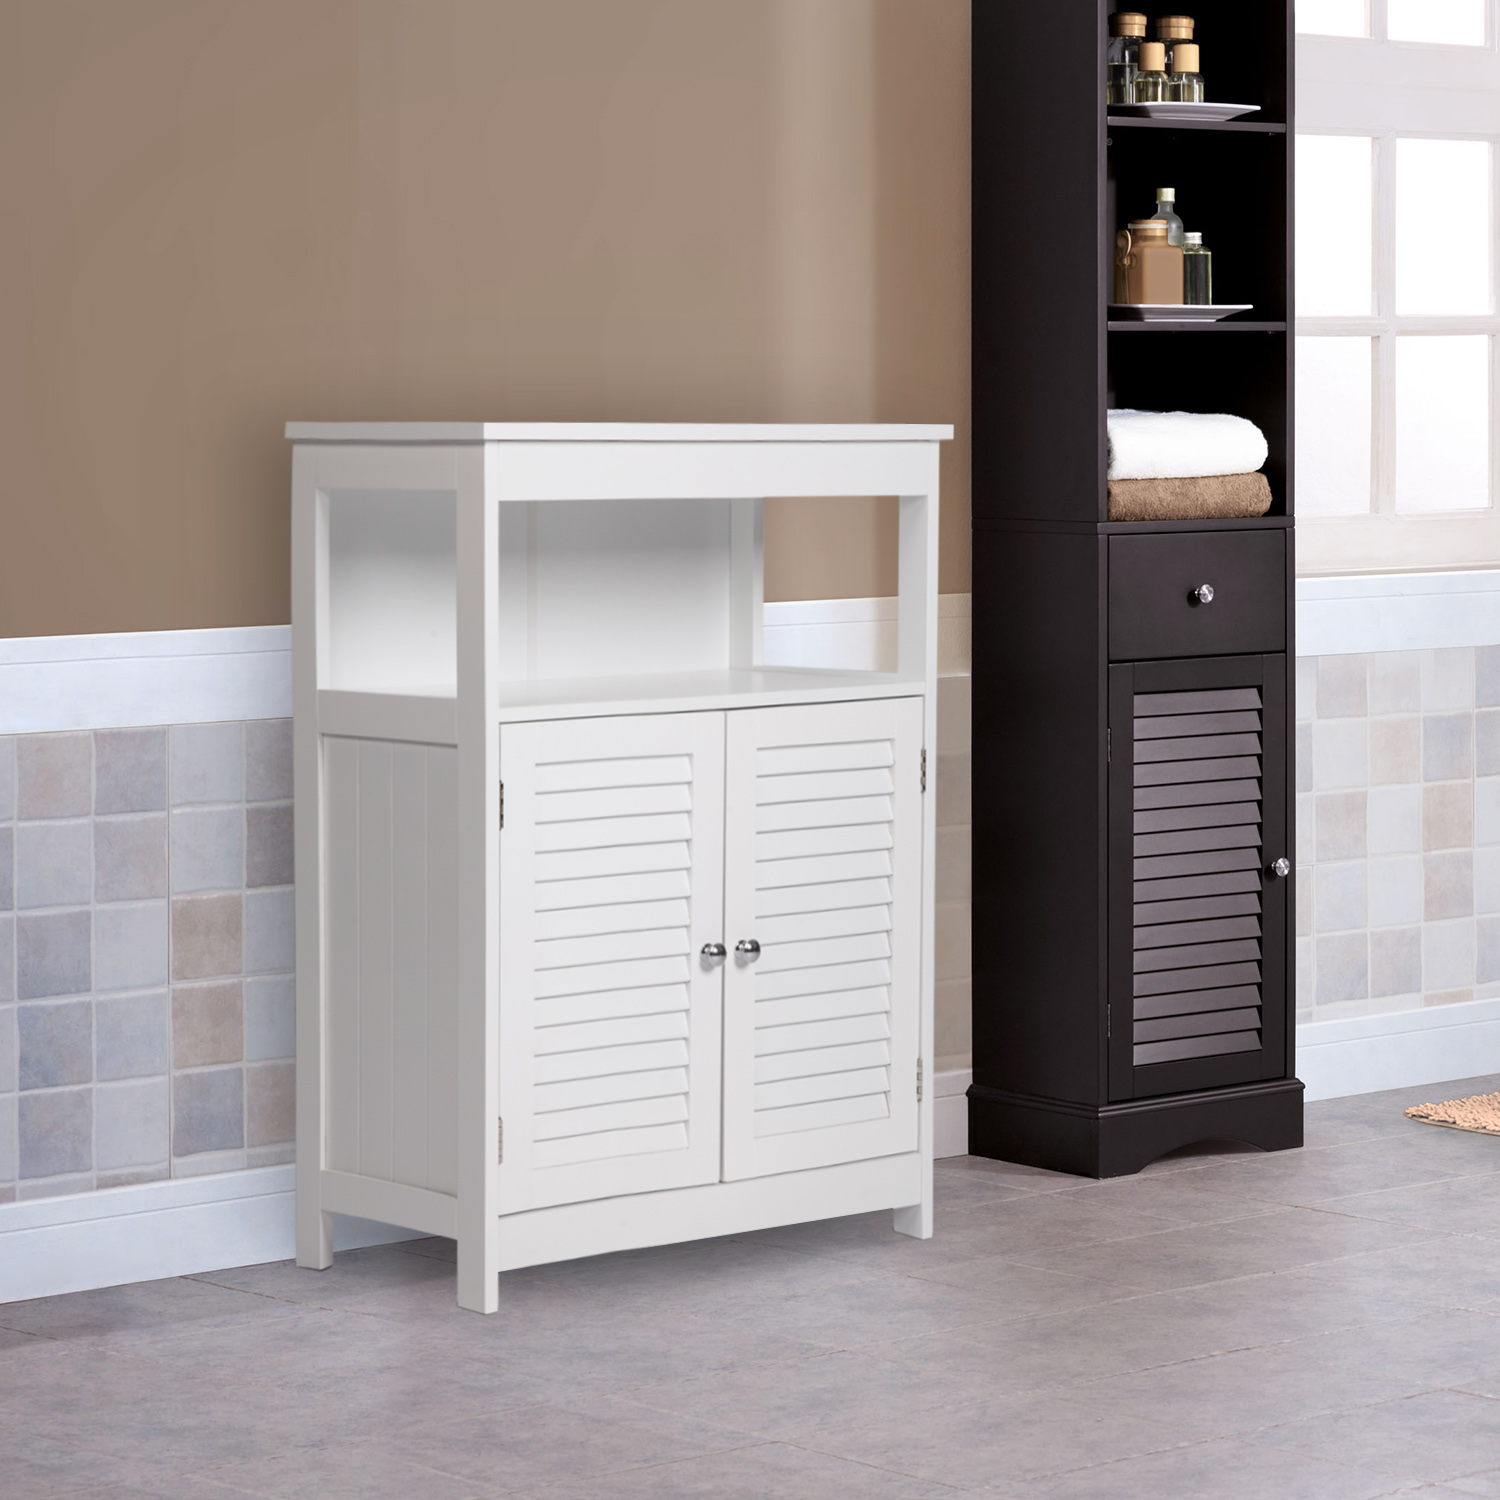 Kinbor Bathroom Floor Cabinet Free Standing Storage Cabinet Organizer With Double Shutter Doors And Adjustable Shelf For Home Furniture White Walmart Com Walmart Com